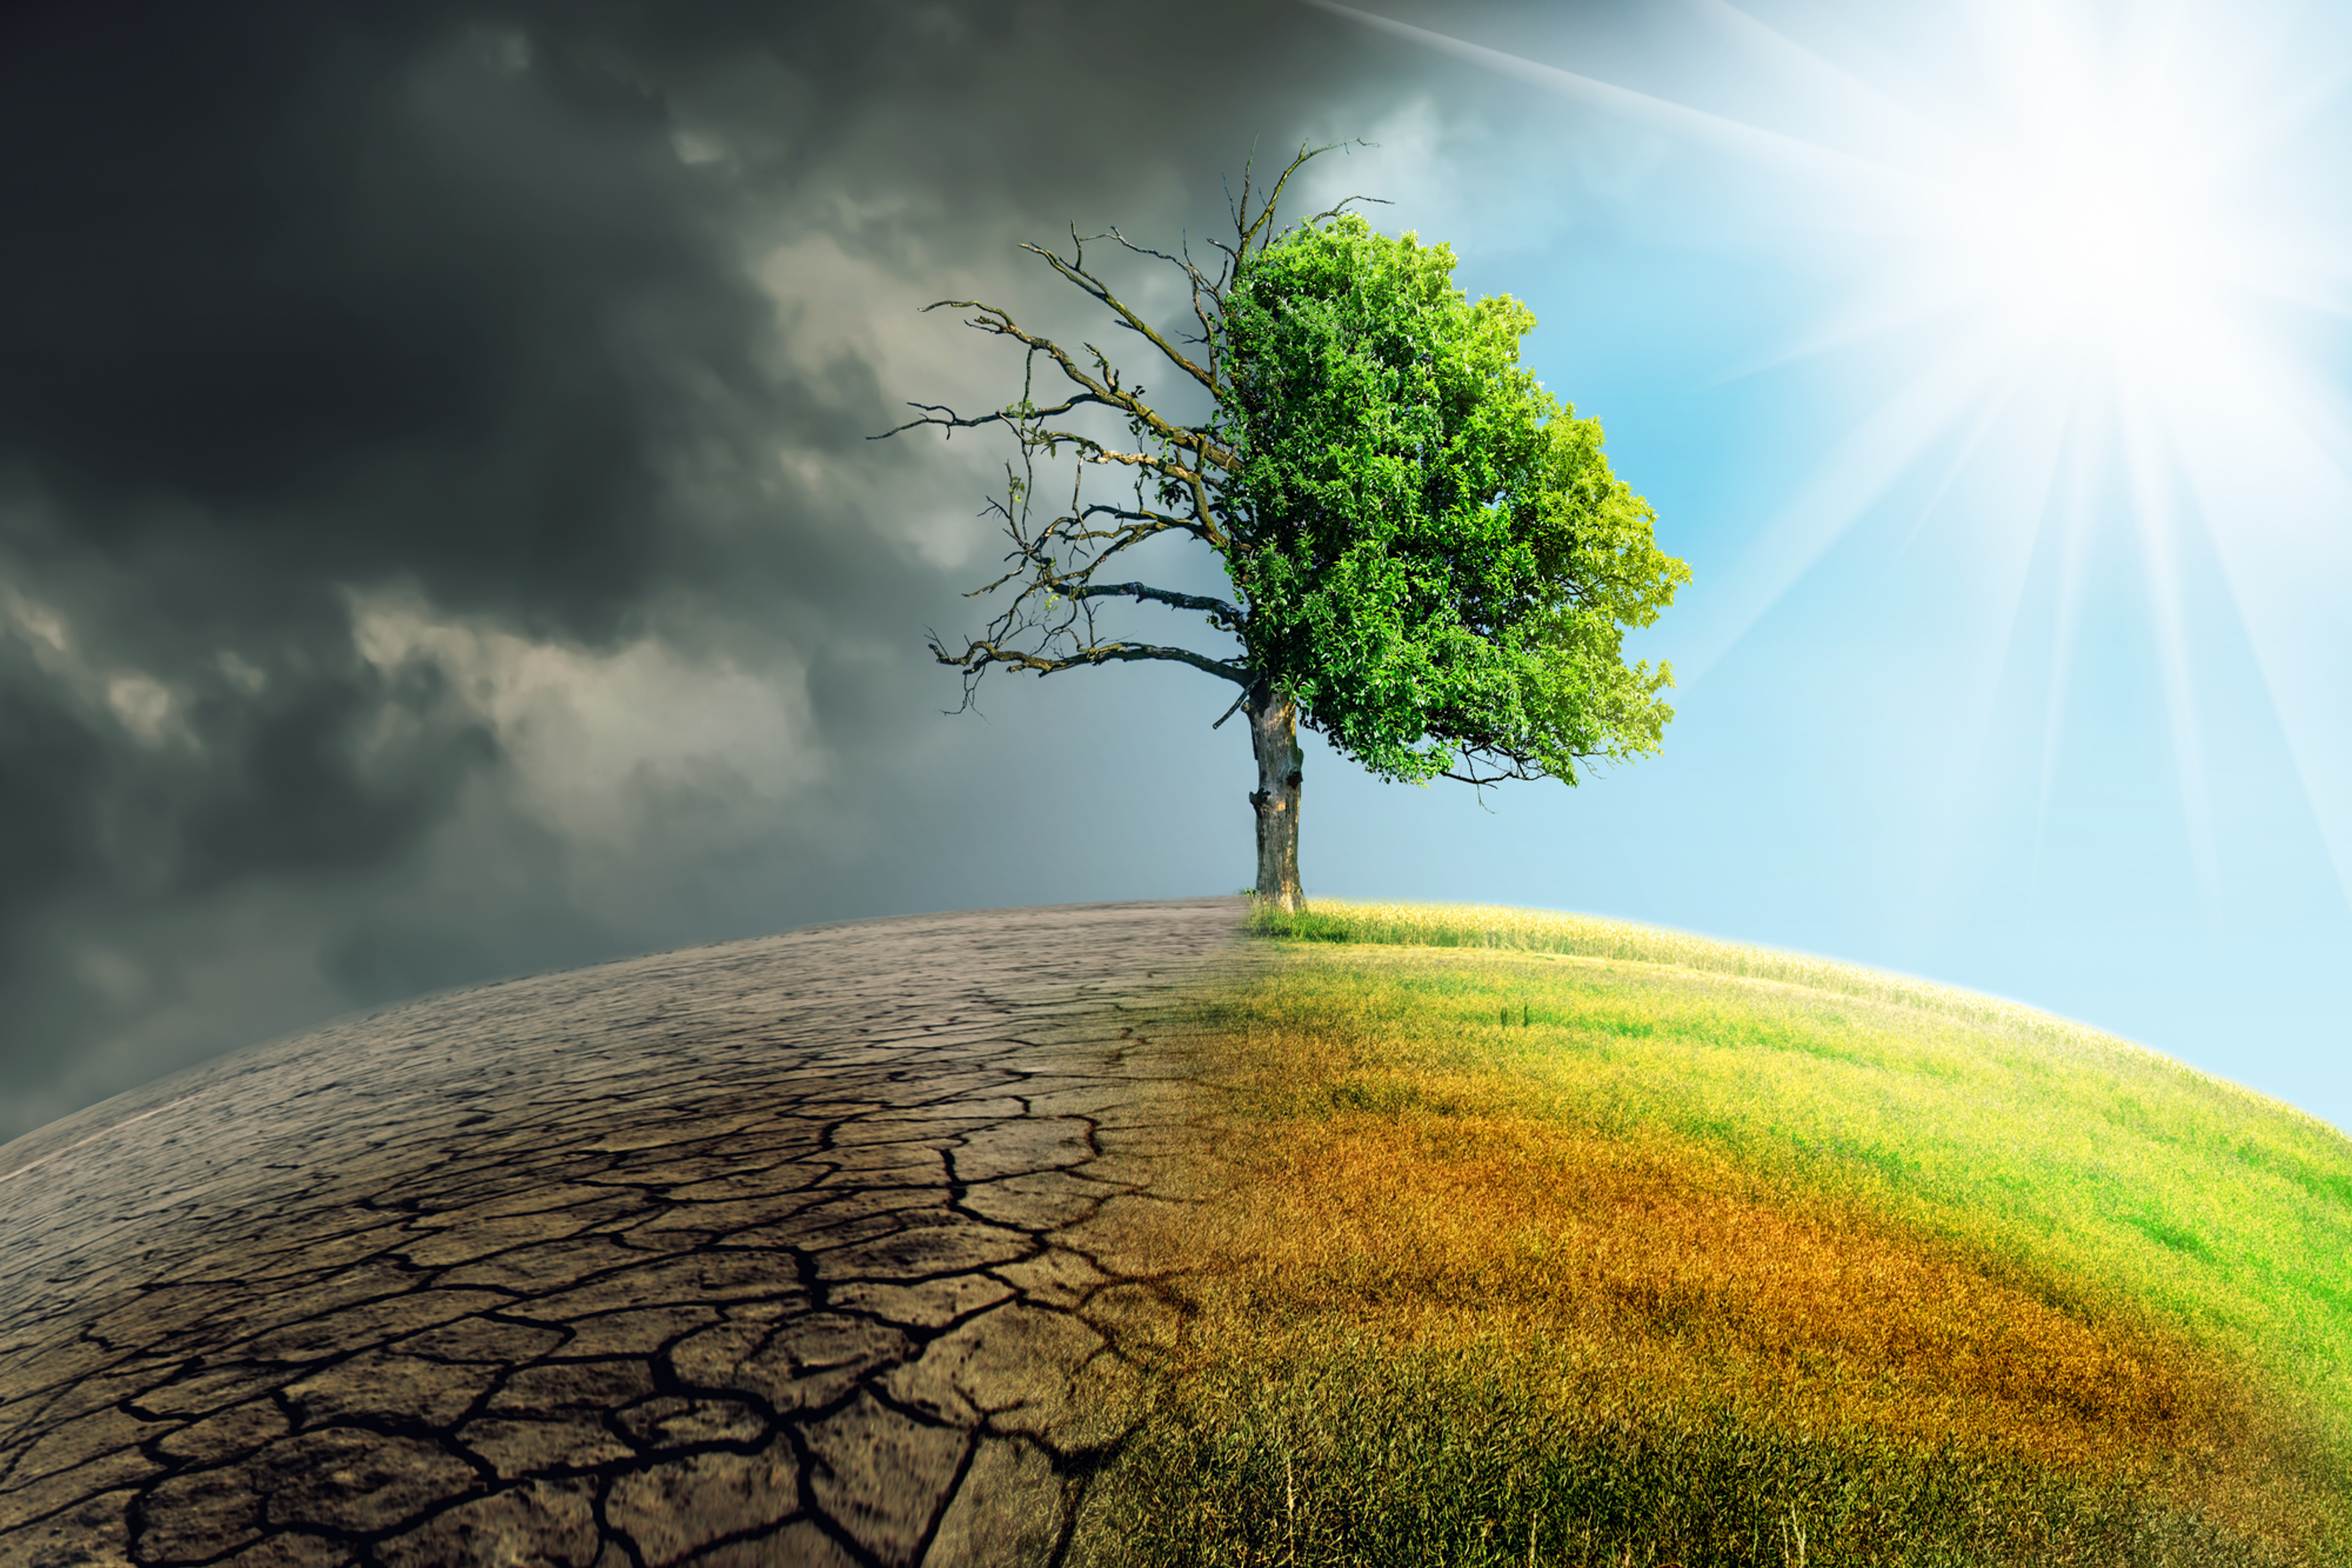 Living in a disrupted climate